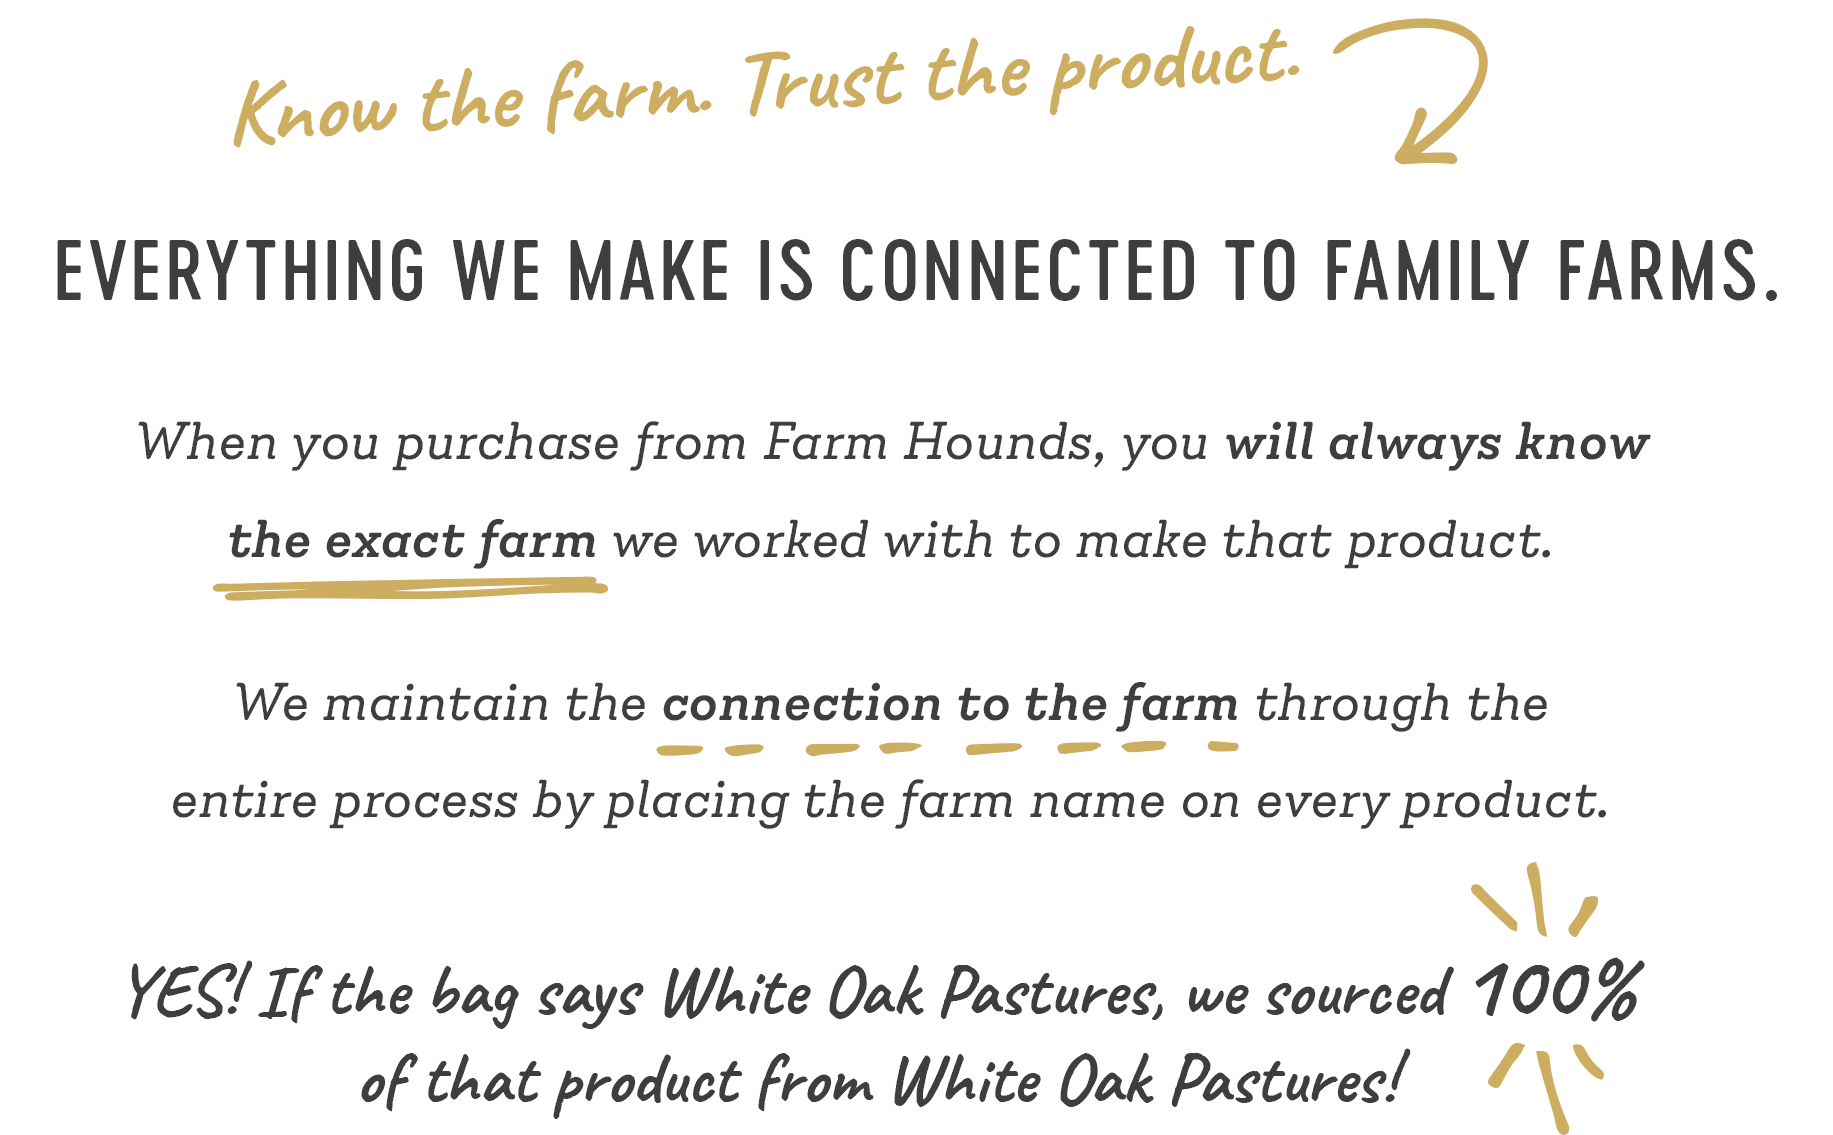 Everything we make is connected to family farms